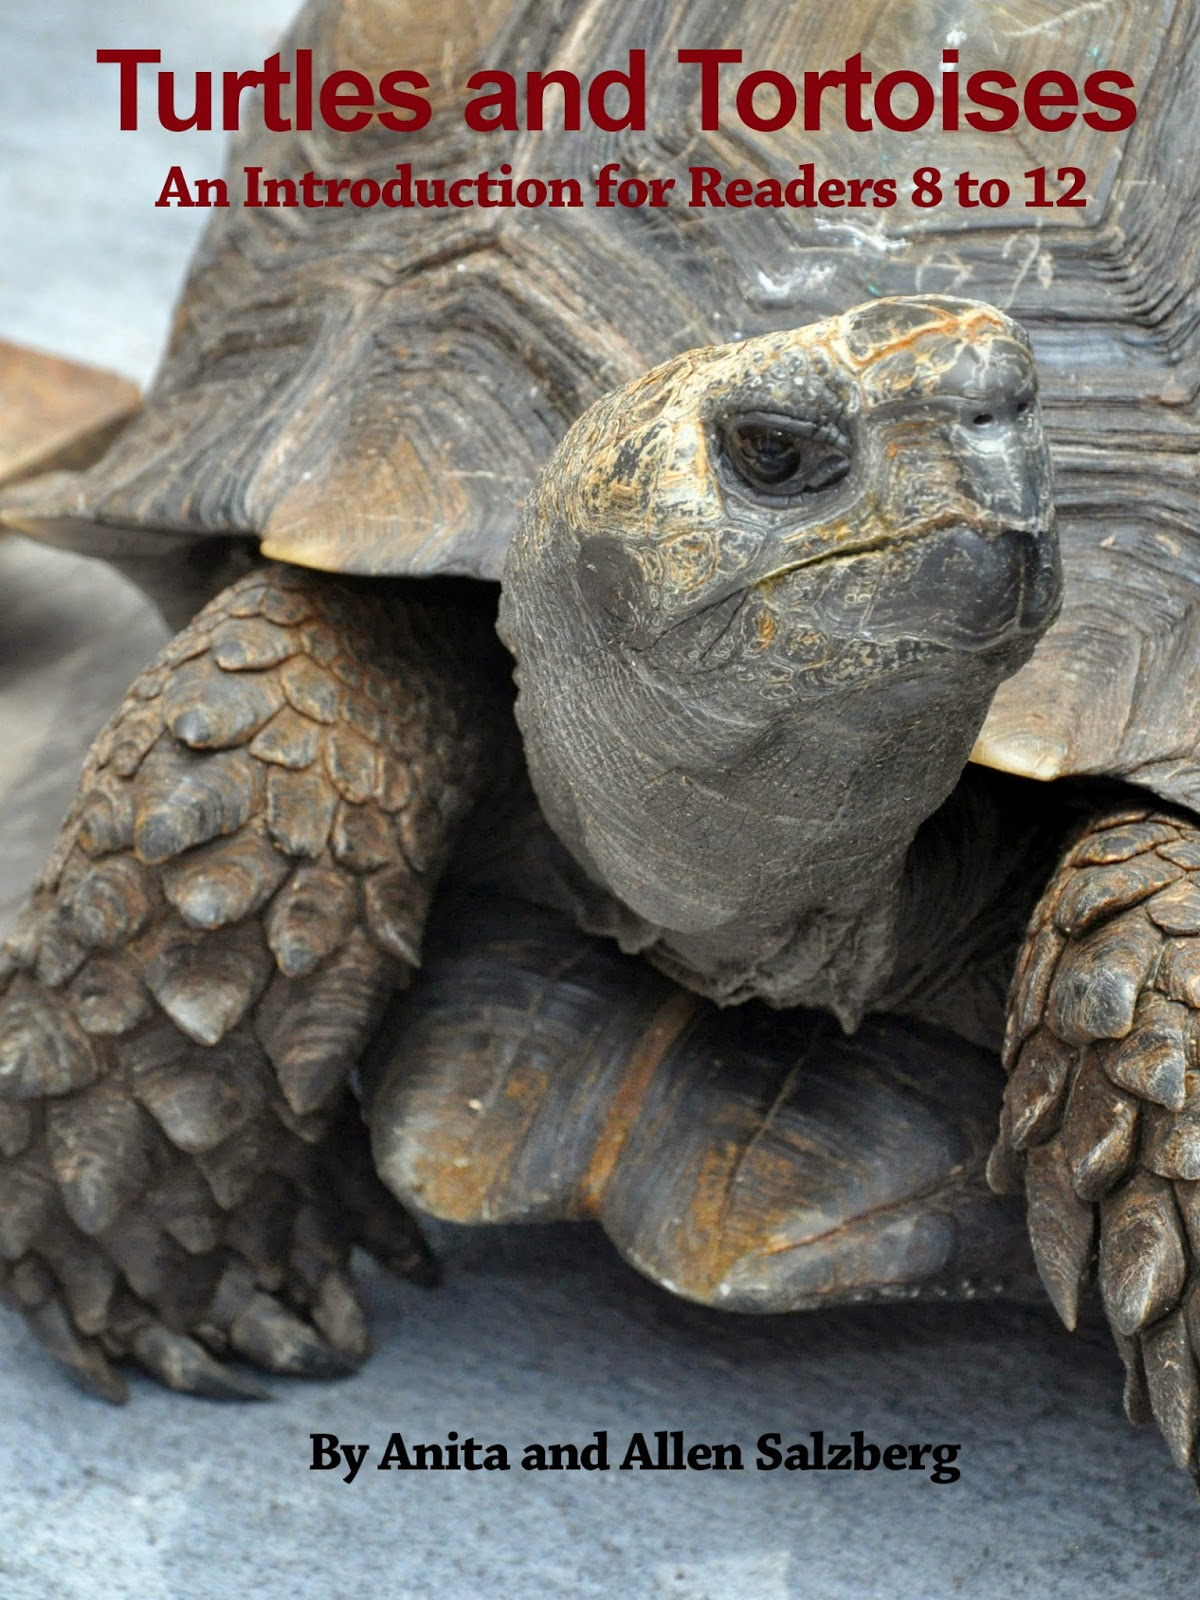 http://smile.amazon.com/TURTLES-AND-TORTOISES-Introduction-Readers-ebook/dp/B00TJCWWEC/ref=zg_bs_158637011_1